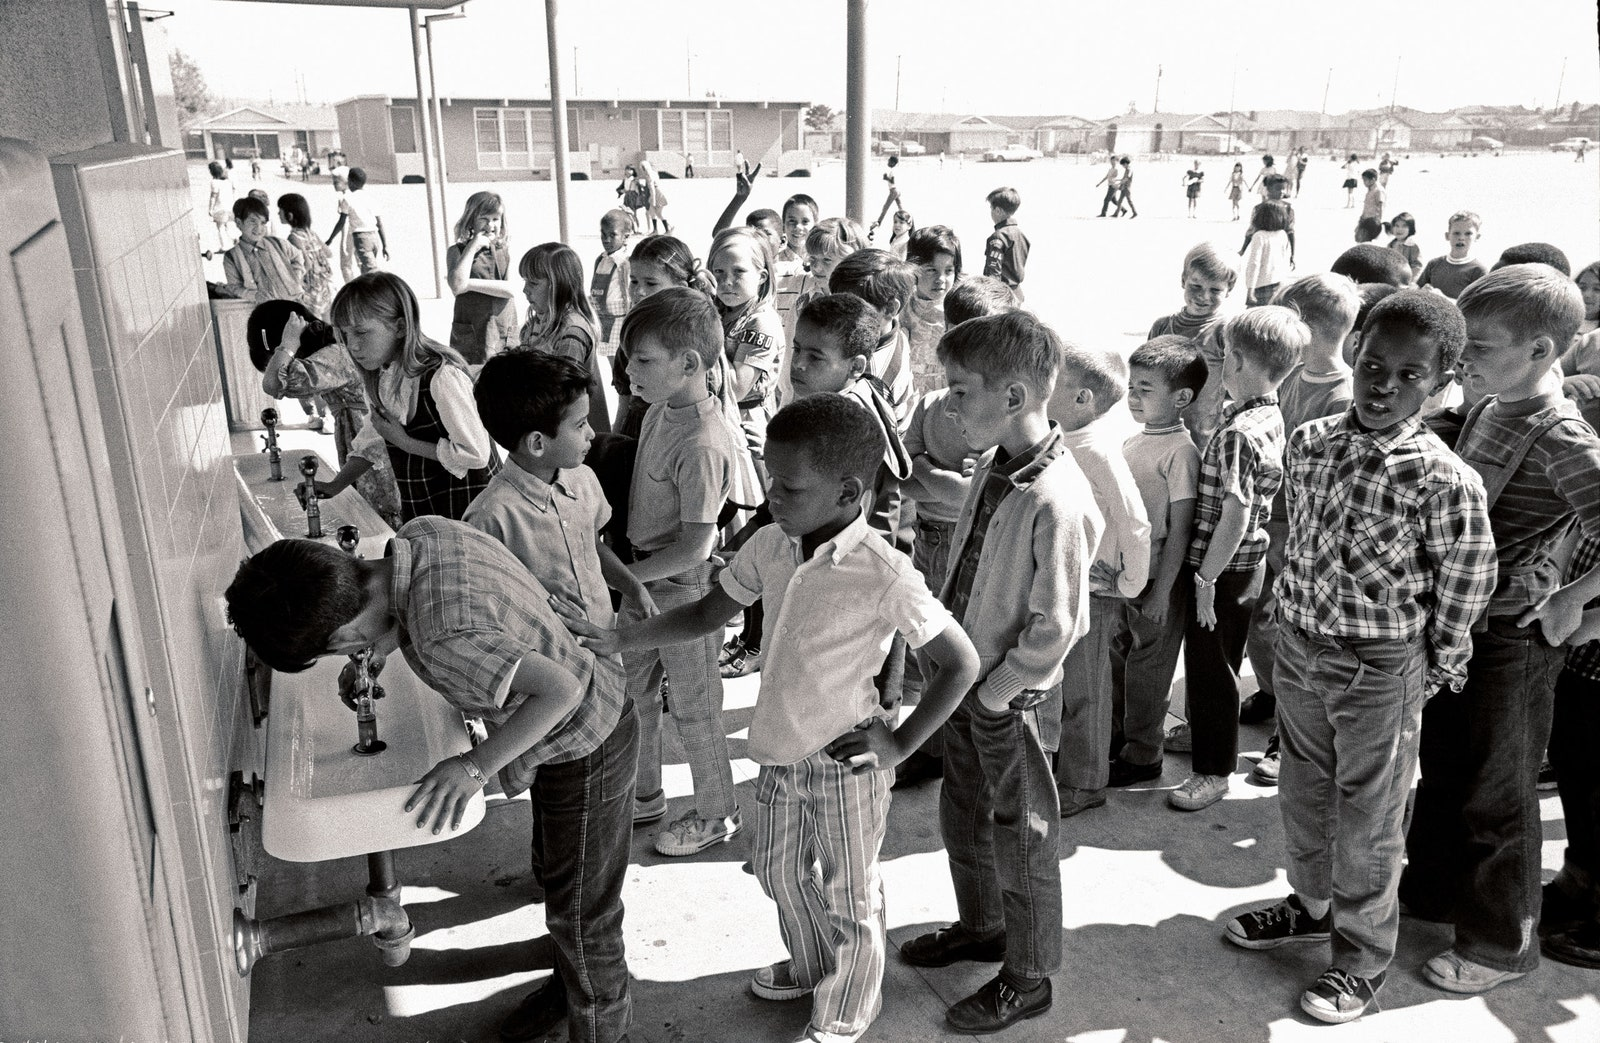 Children at a desegregated school in California in 1970 line up at drinking fountains